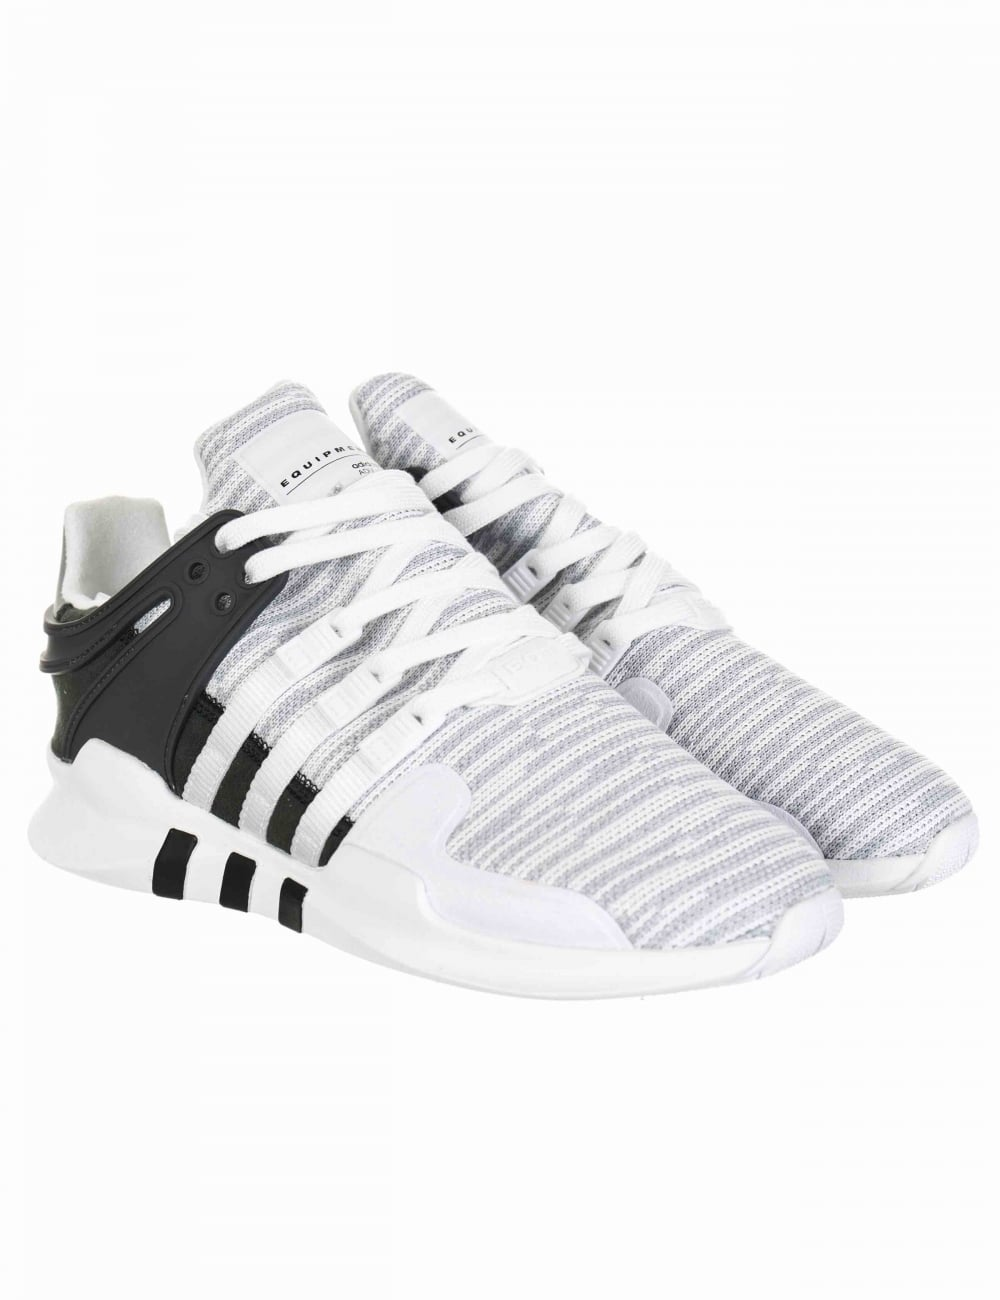 0b93cd9351e9 Adidas Originals EQT Support Advance Shoes - Ftw White Core Black (BB1296)